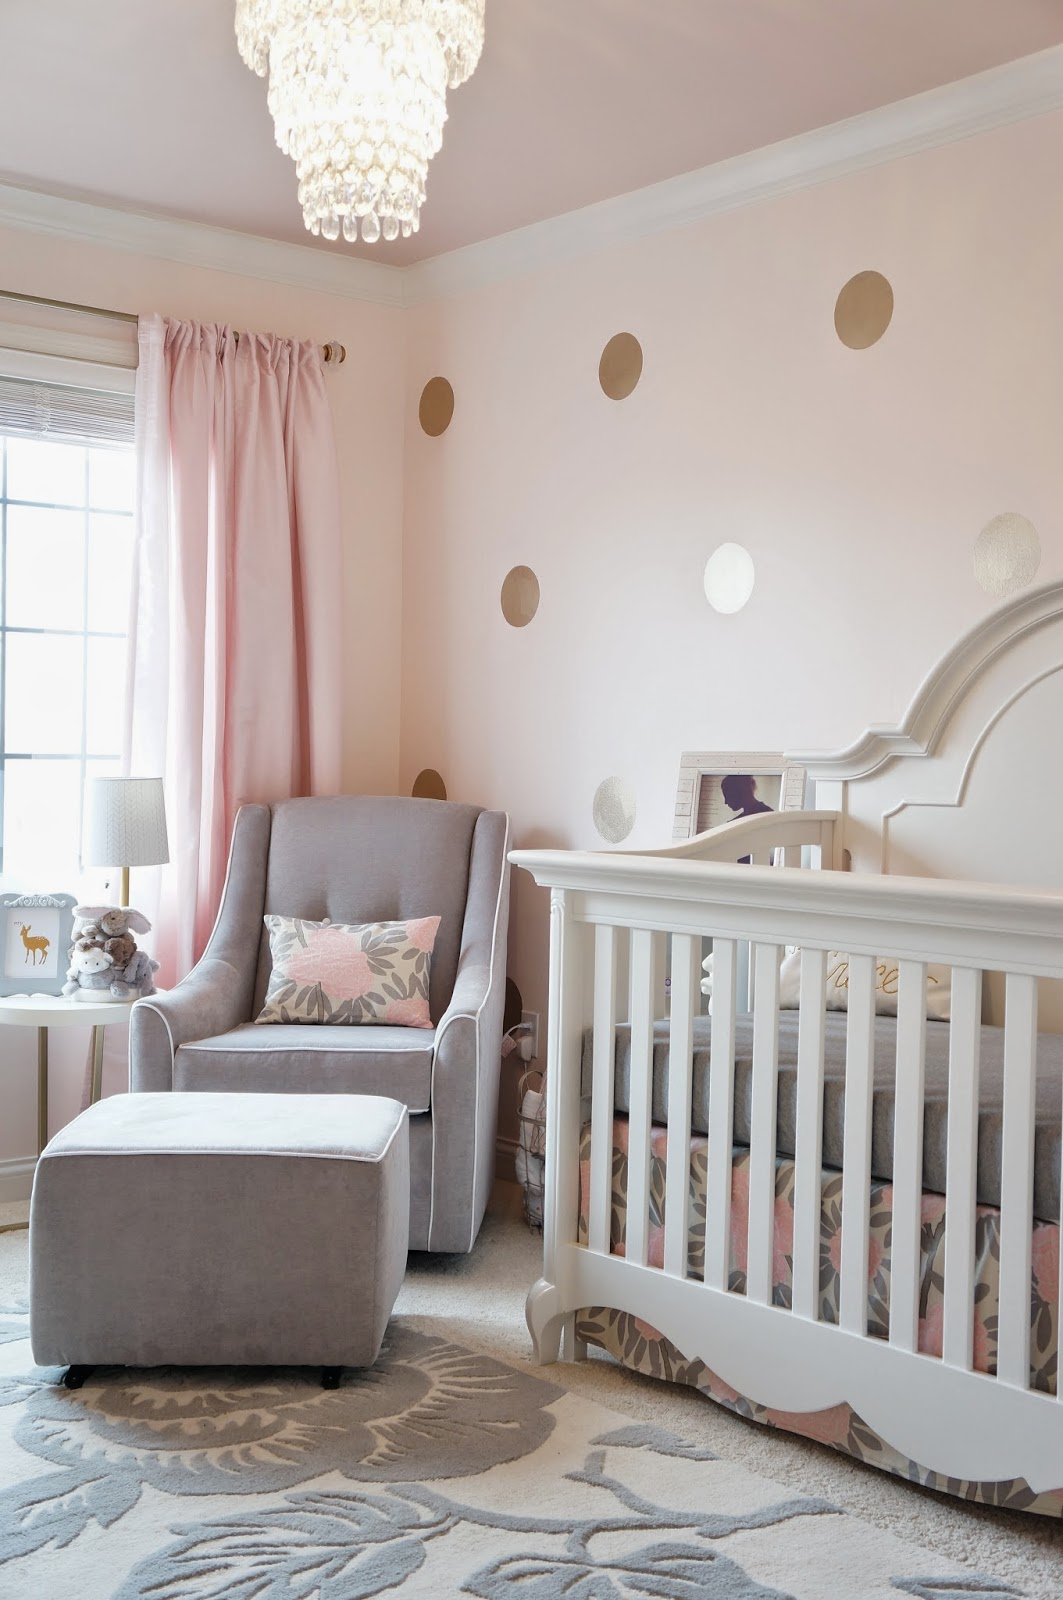 It 39 s a pretty prins life nursery reveal for Cadre pour decoration maison